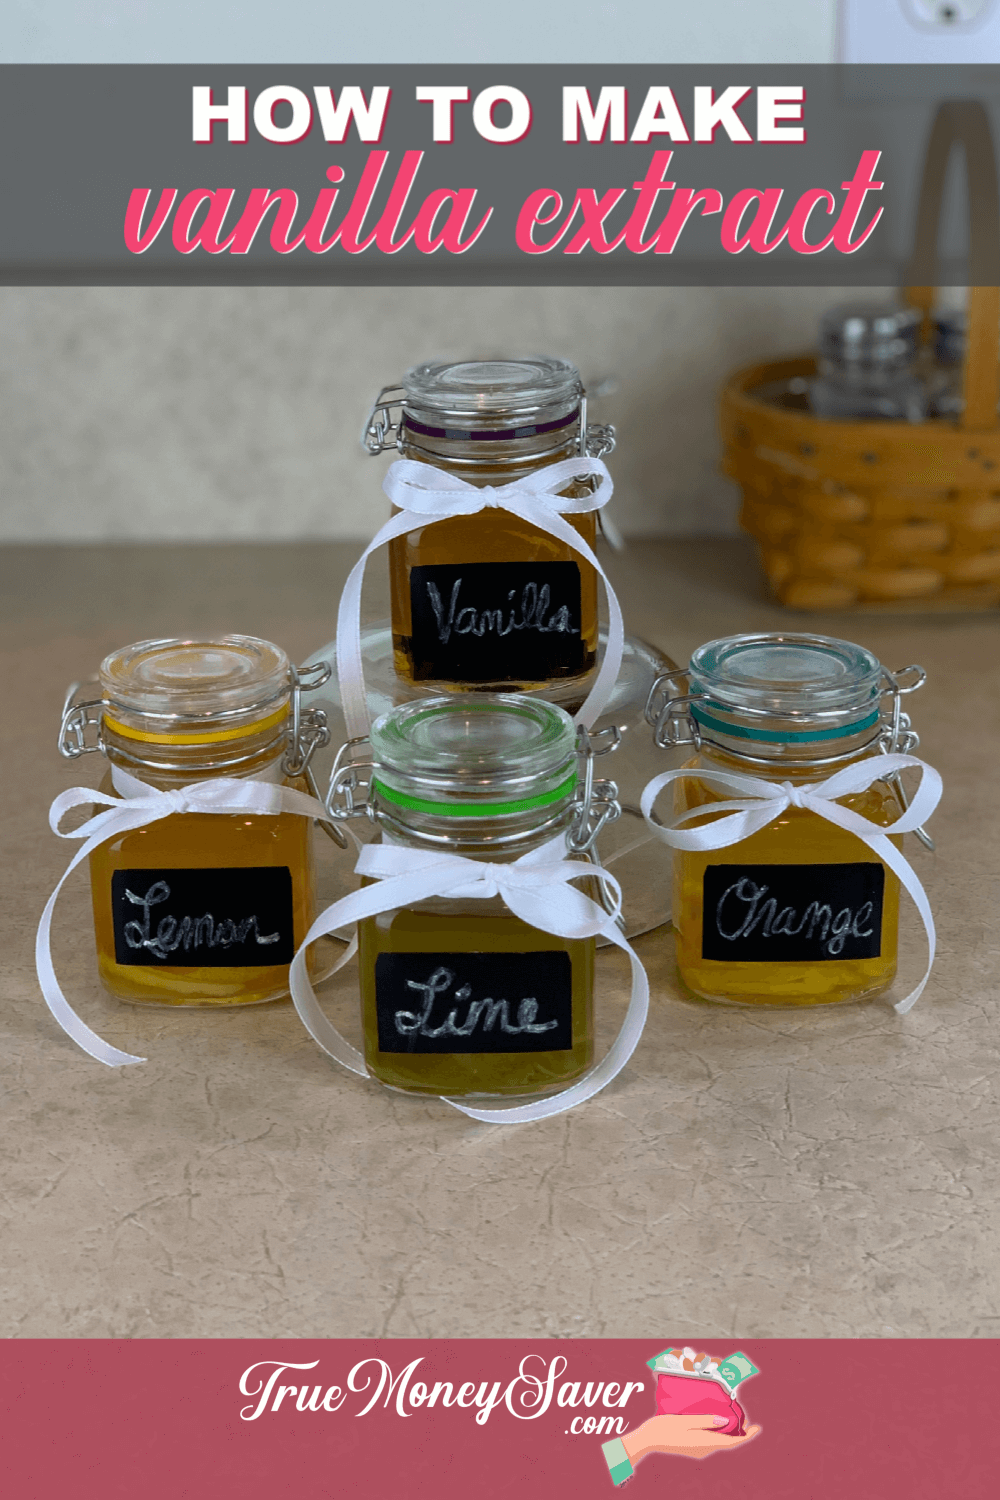 How To Make Vanilla Extract And Other Extract Flavors For Gifts